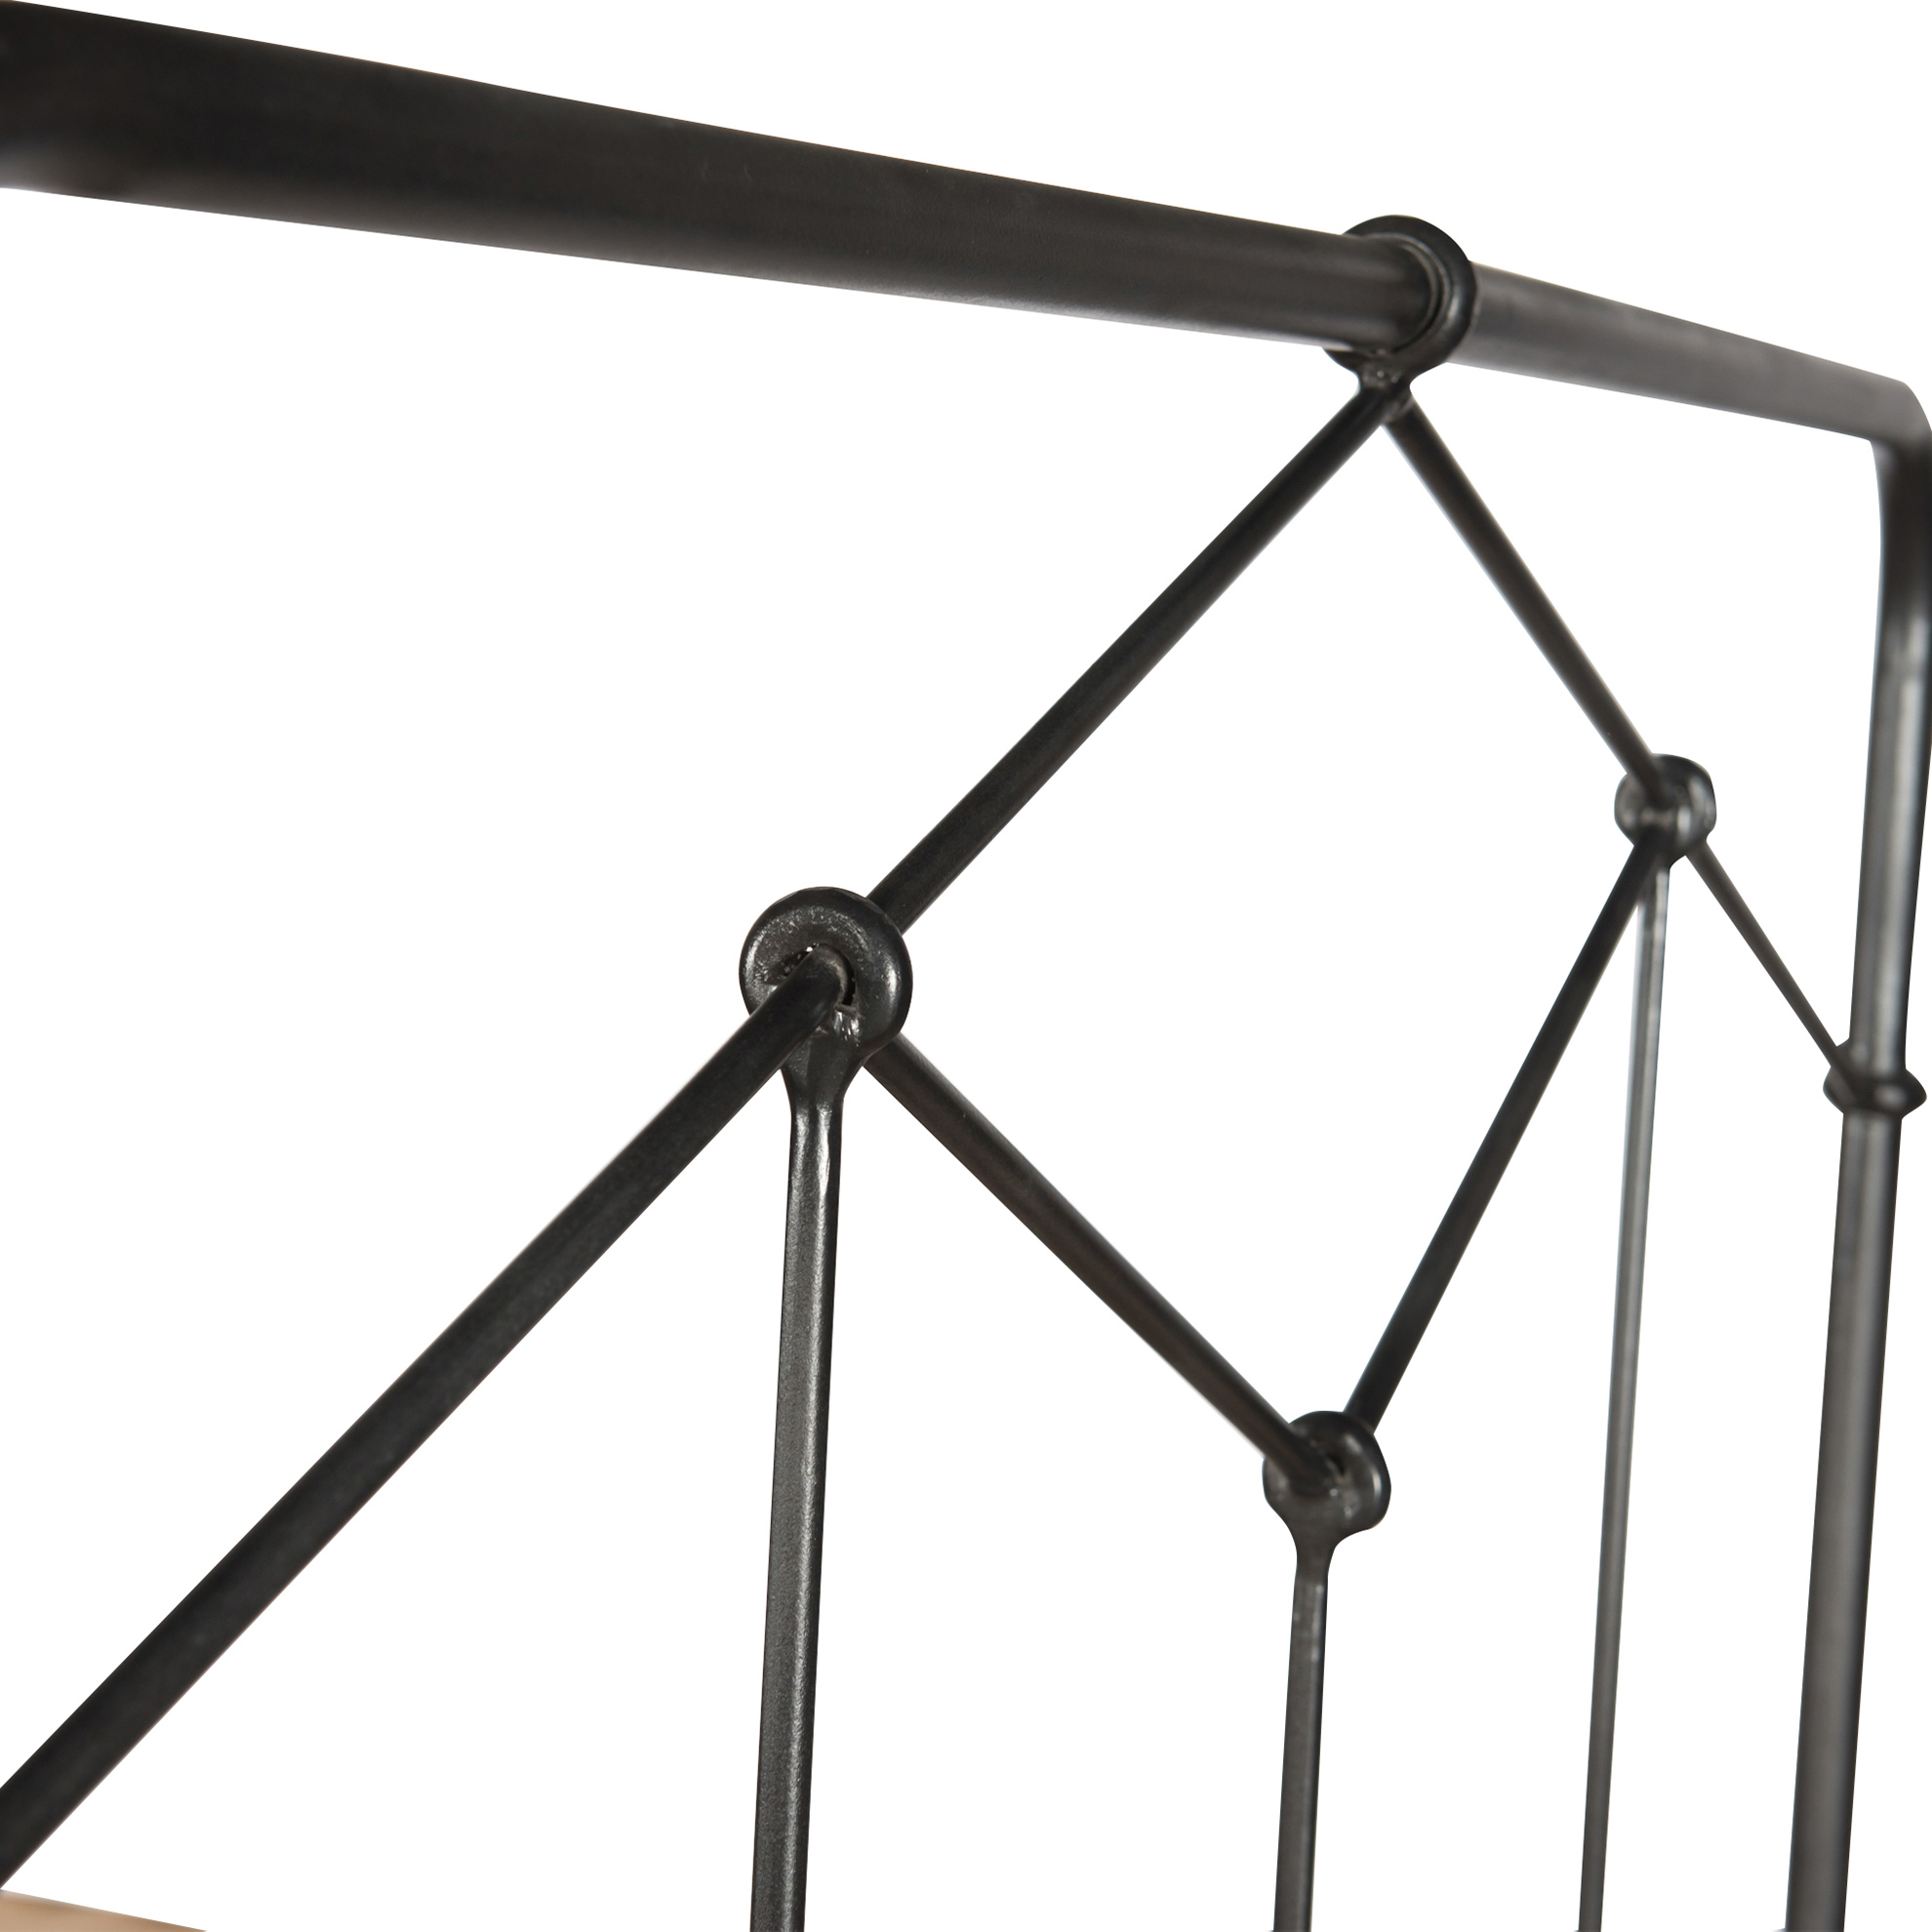 Saar Industrial Loft Black Geometric European Design Iron Bed - Queen